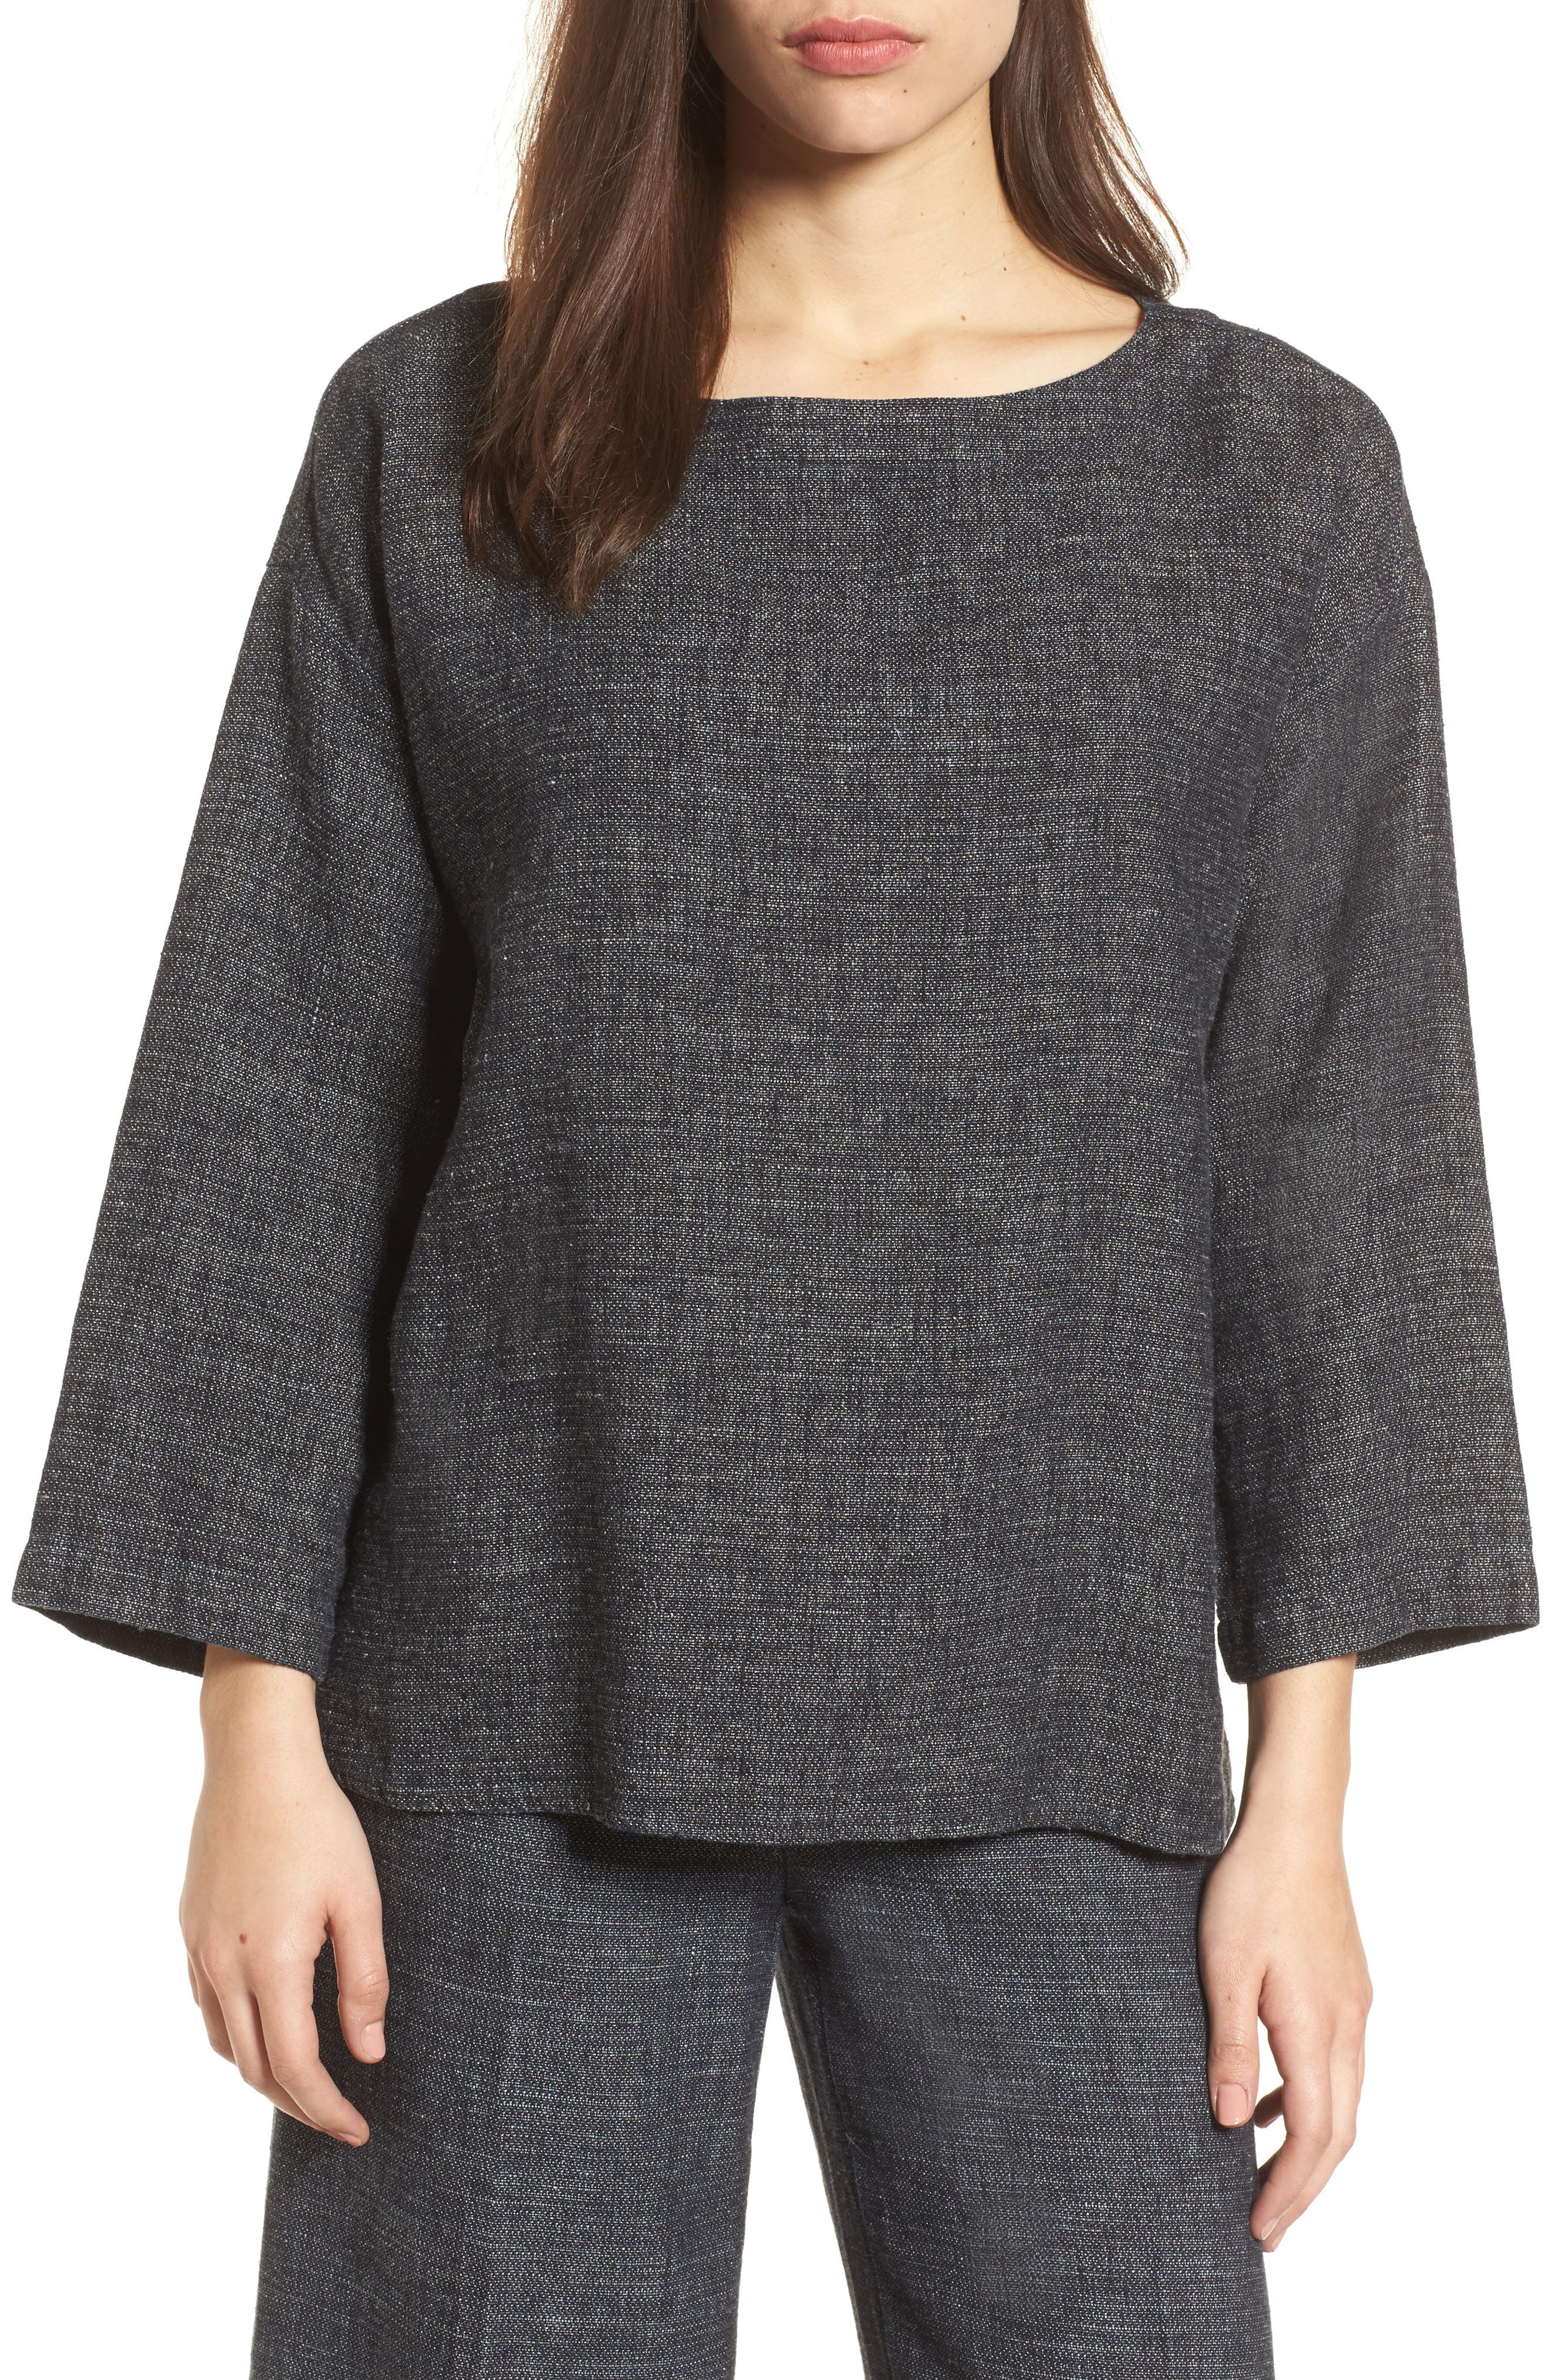 Alternate Image 1 Selected - Eileen Fisher Boxy Hemp & Organic Cotton Top